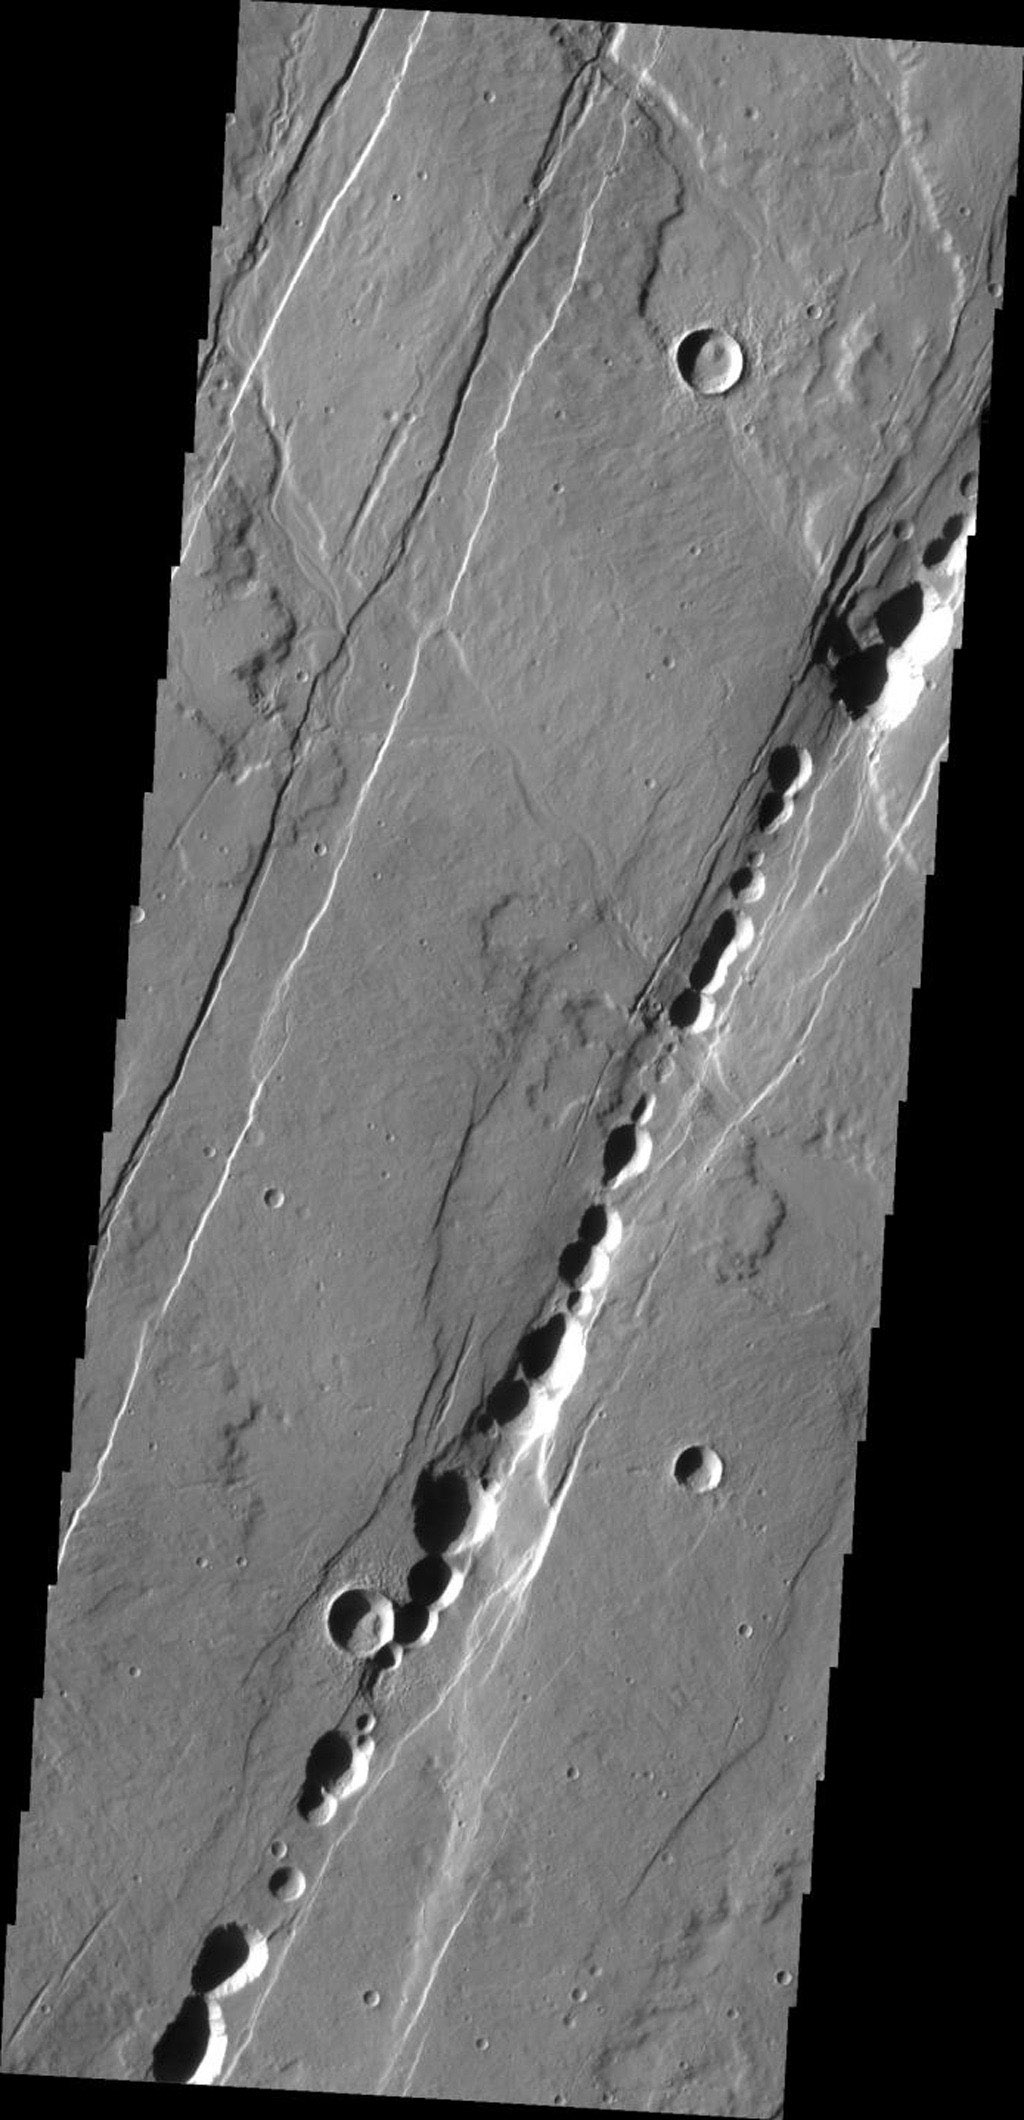 This image from NASA's Mars Odyssey shows the ancient collapsed volcano, Alba Patera, surrounded by graben and collapse features termed catenae on Mars.